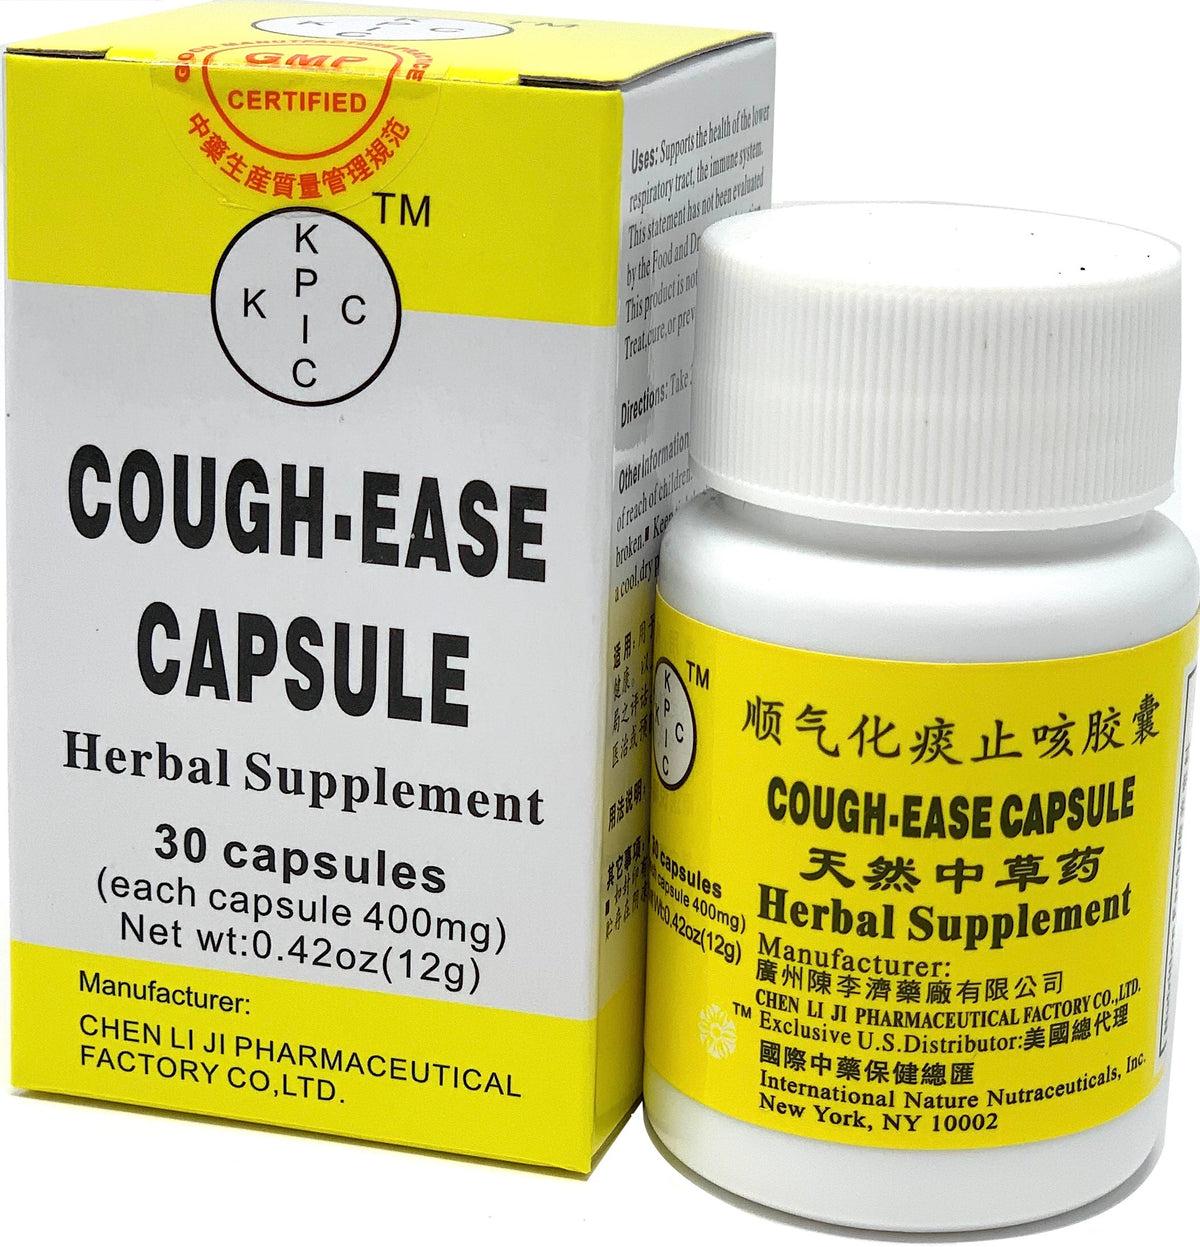 Cough-Ease Capsule 顺气化痰胶囊